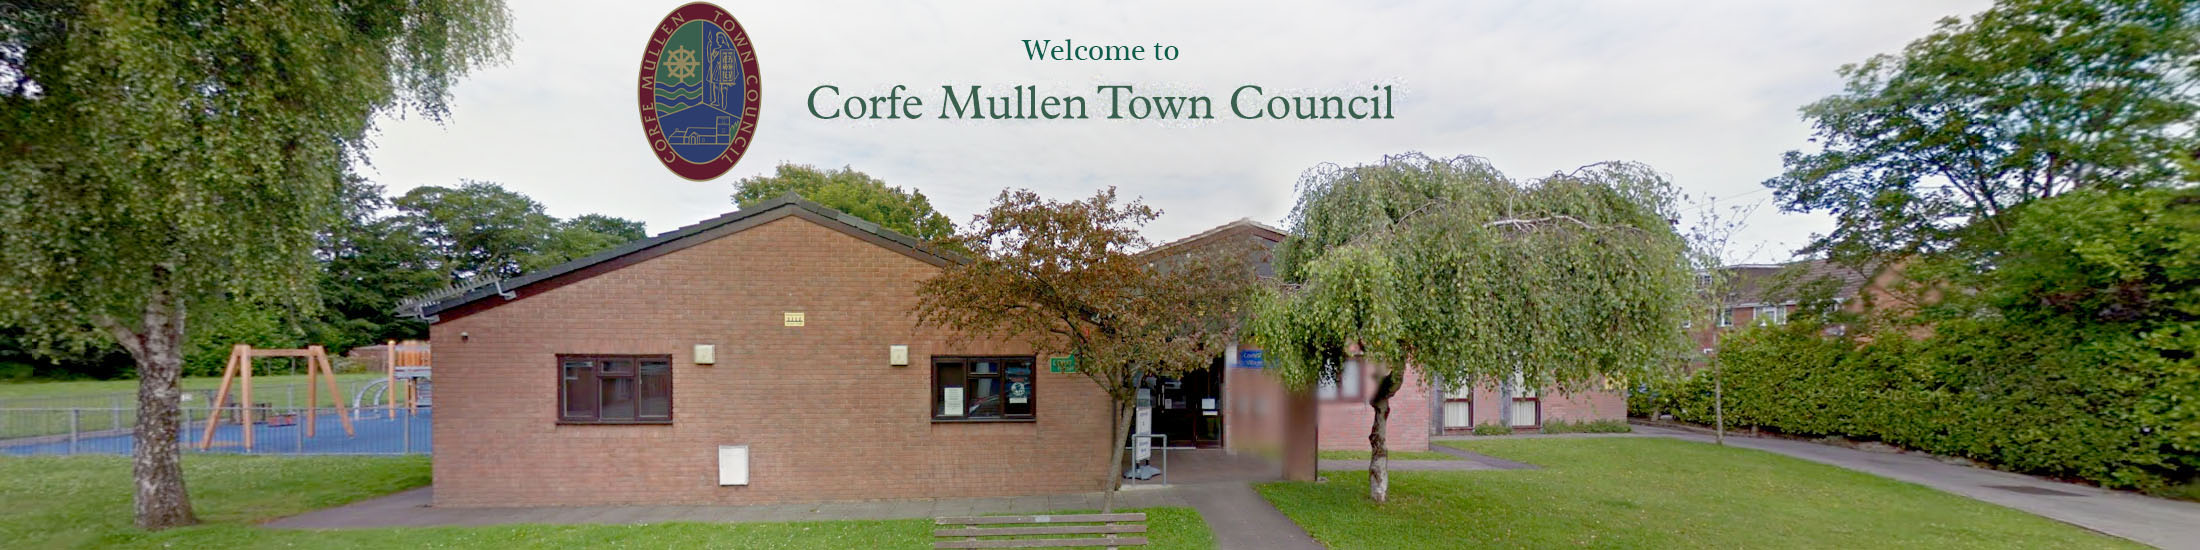 Header Image for Corfe Mullen Town Council